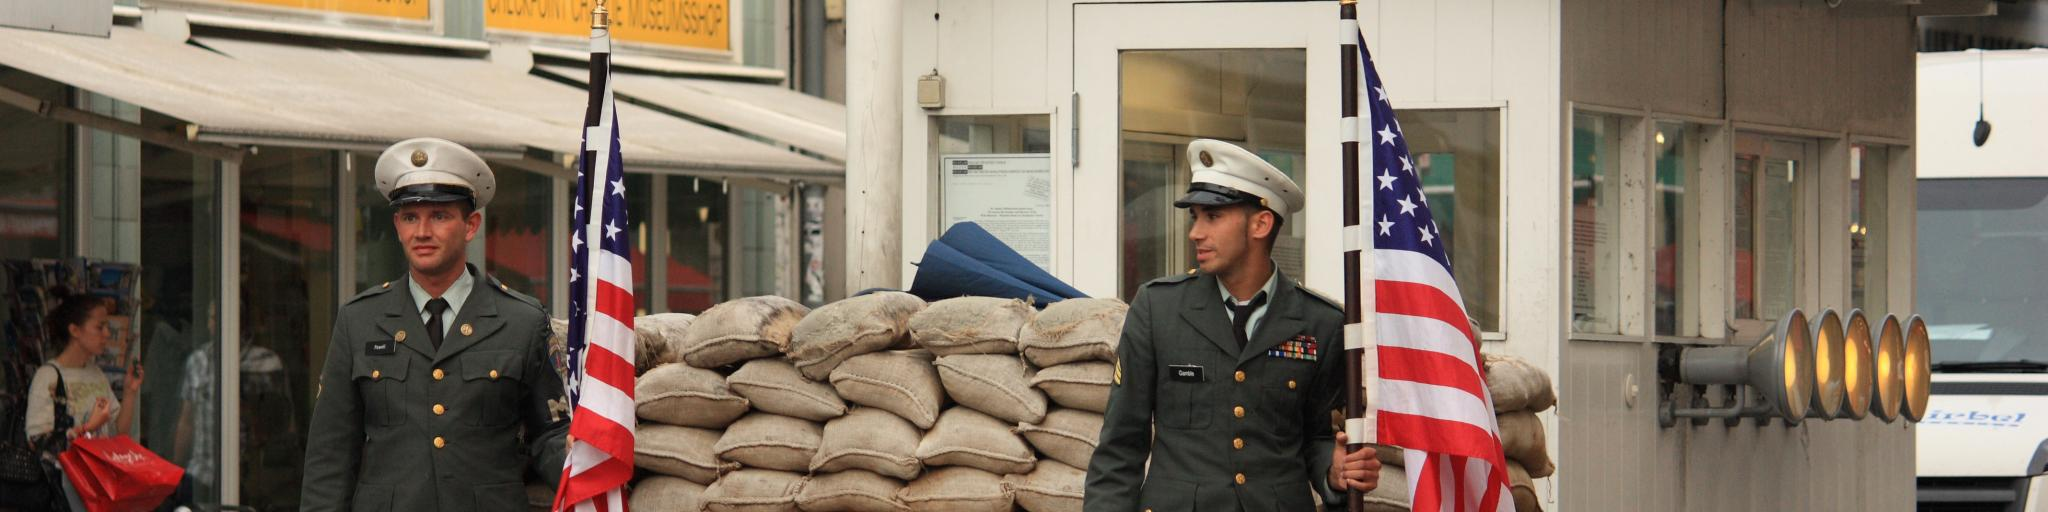 Two guards hold American flags at Checkpoint Charlie in Berlin